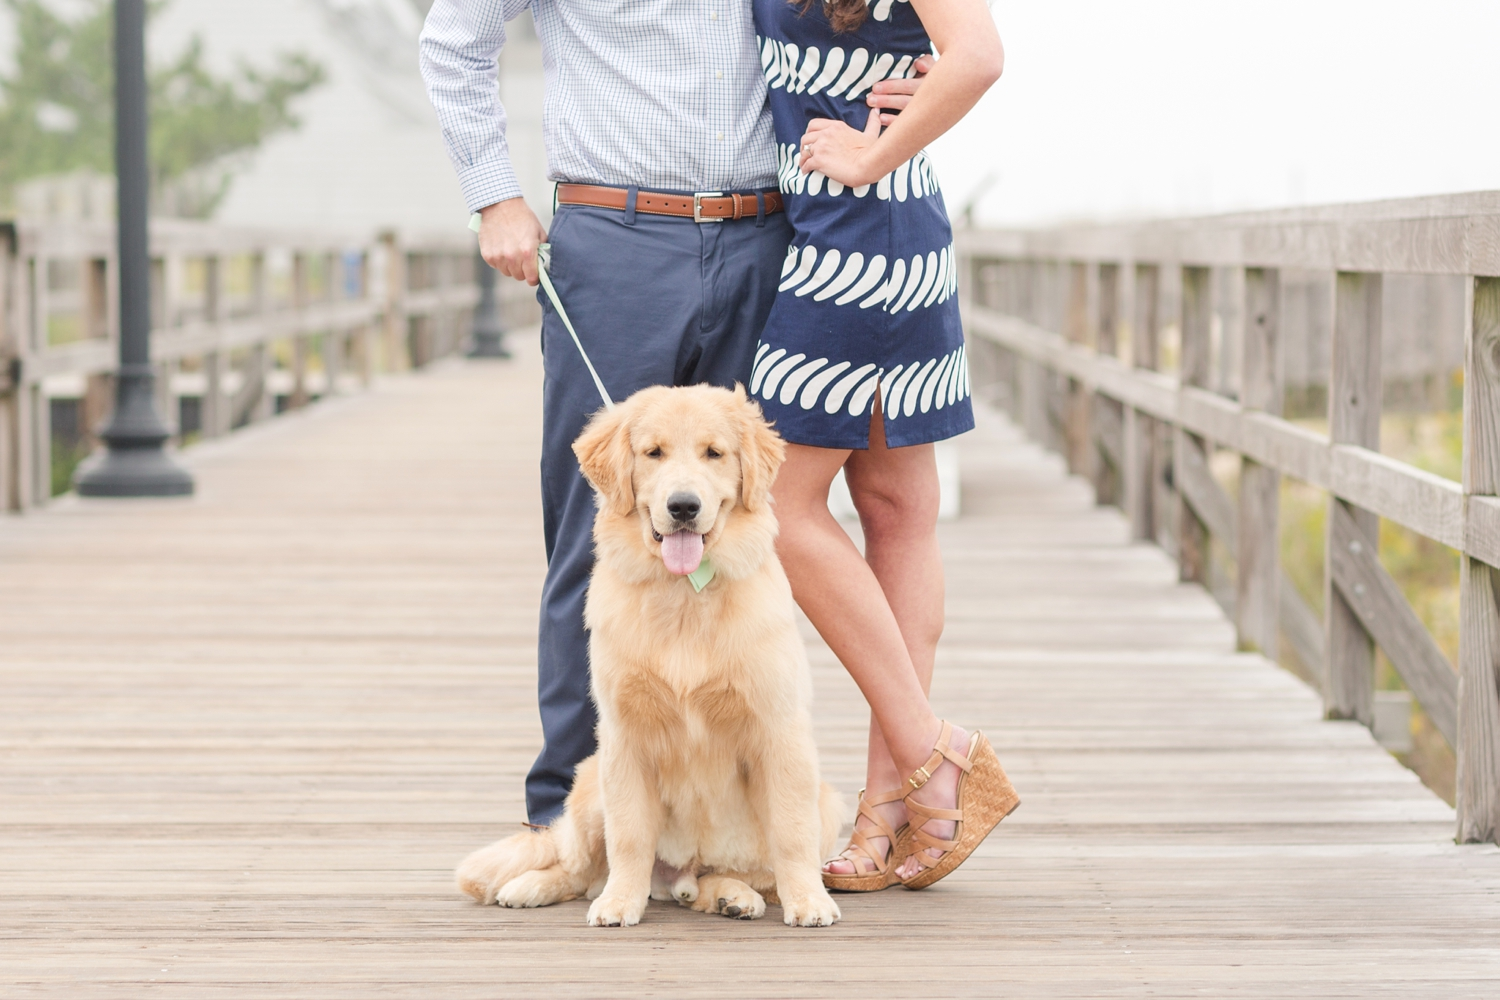 Susan Sturgeon & Stephen George Engagement-22_bethany-beach-engagement-shoot-delaware-maryland-photographer-anna-grace-photography-photo.jpg